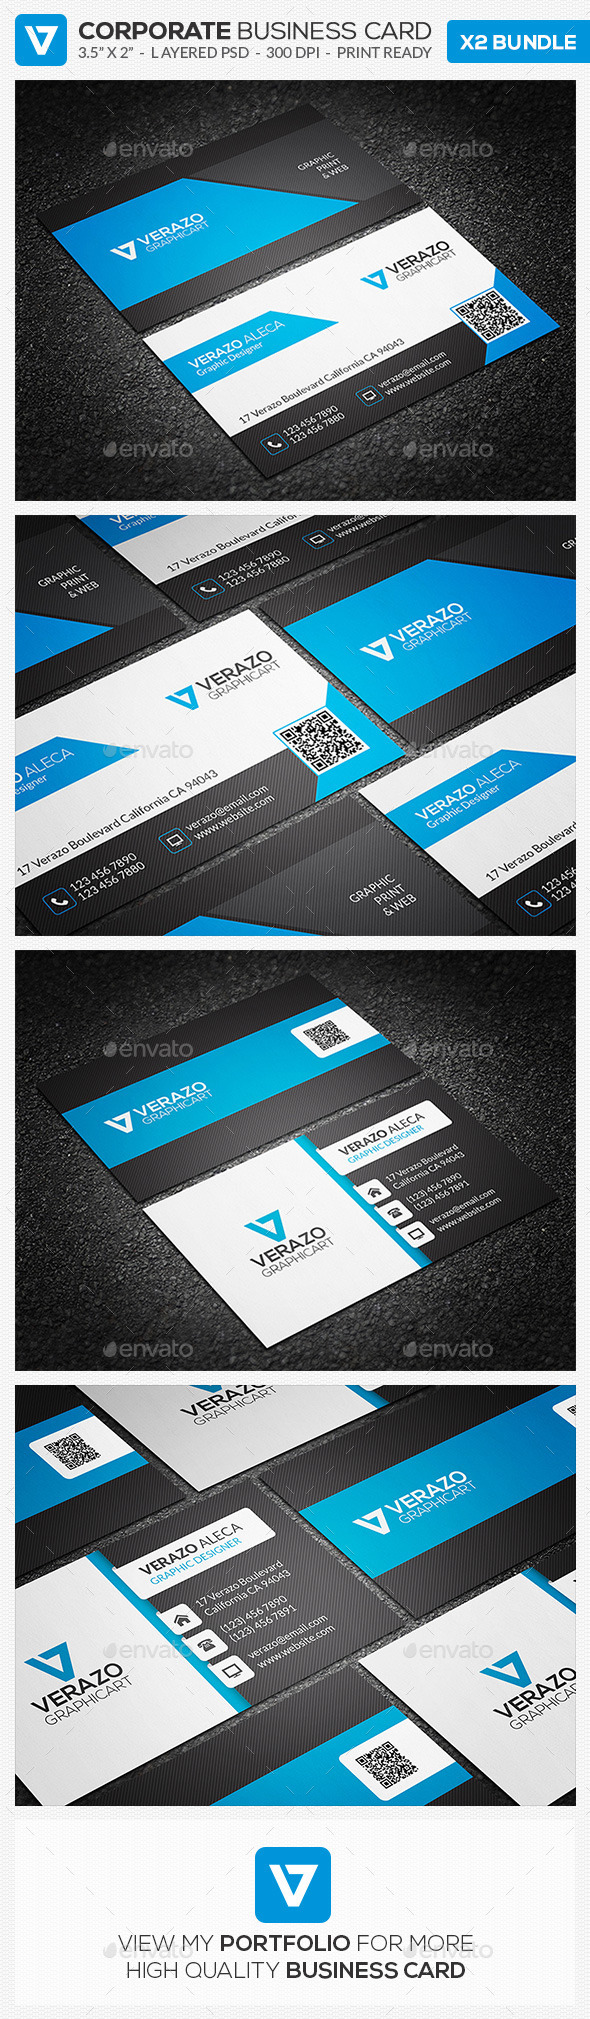 GraphicRiver Business Card Bundle 17 11000899